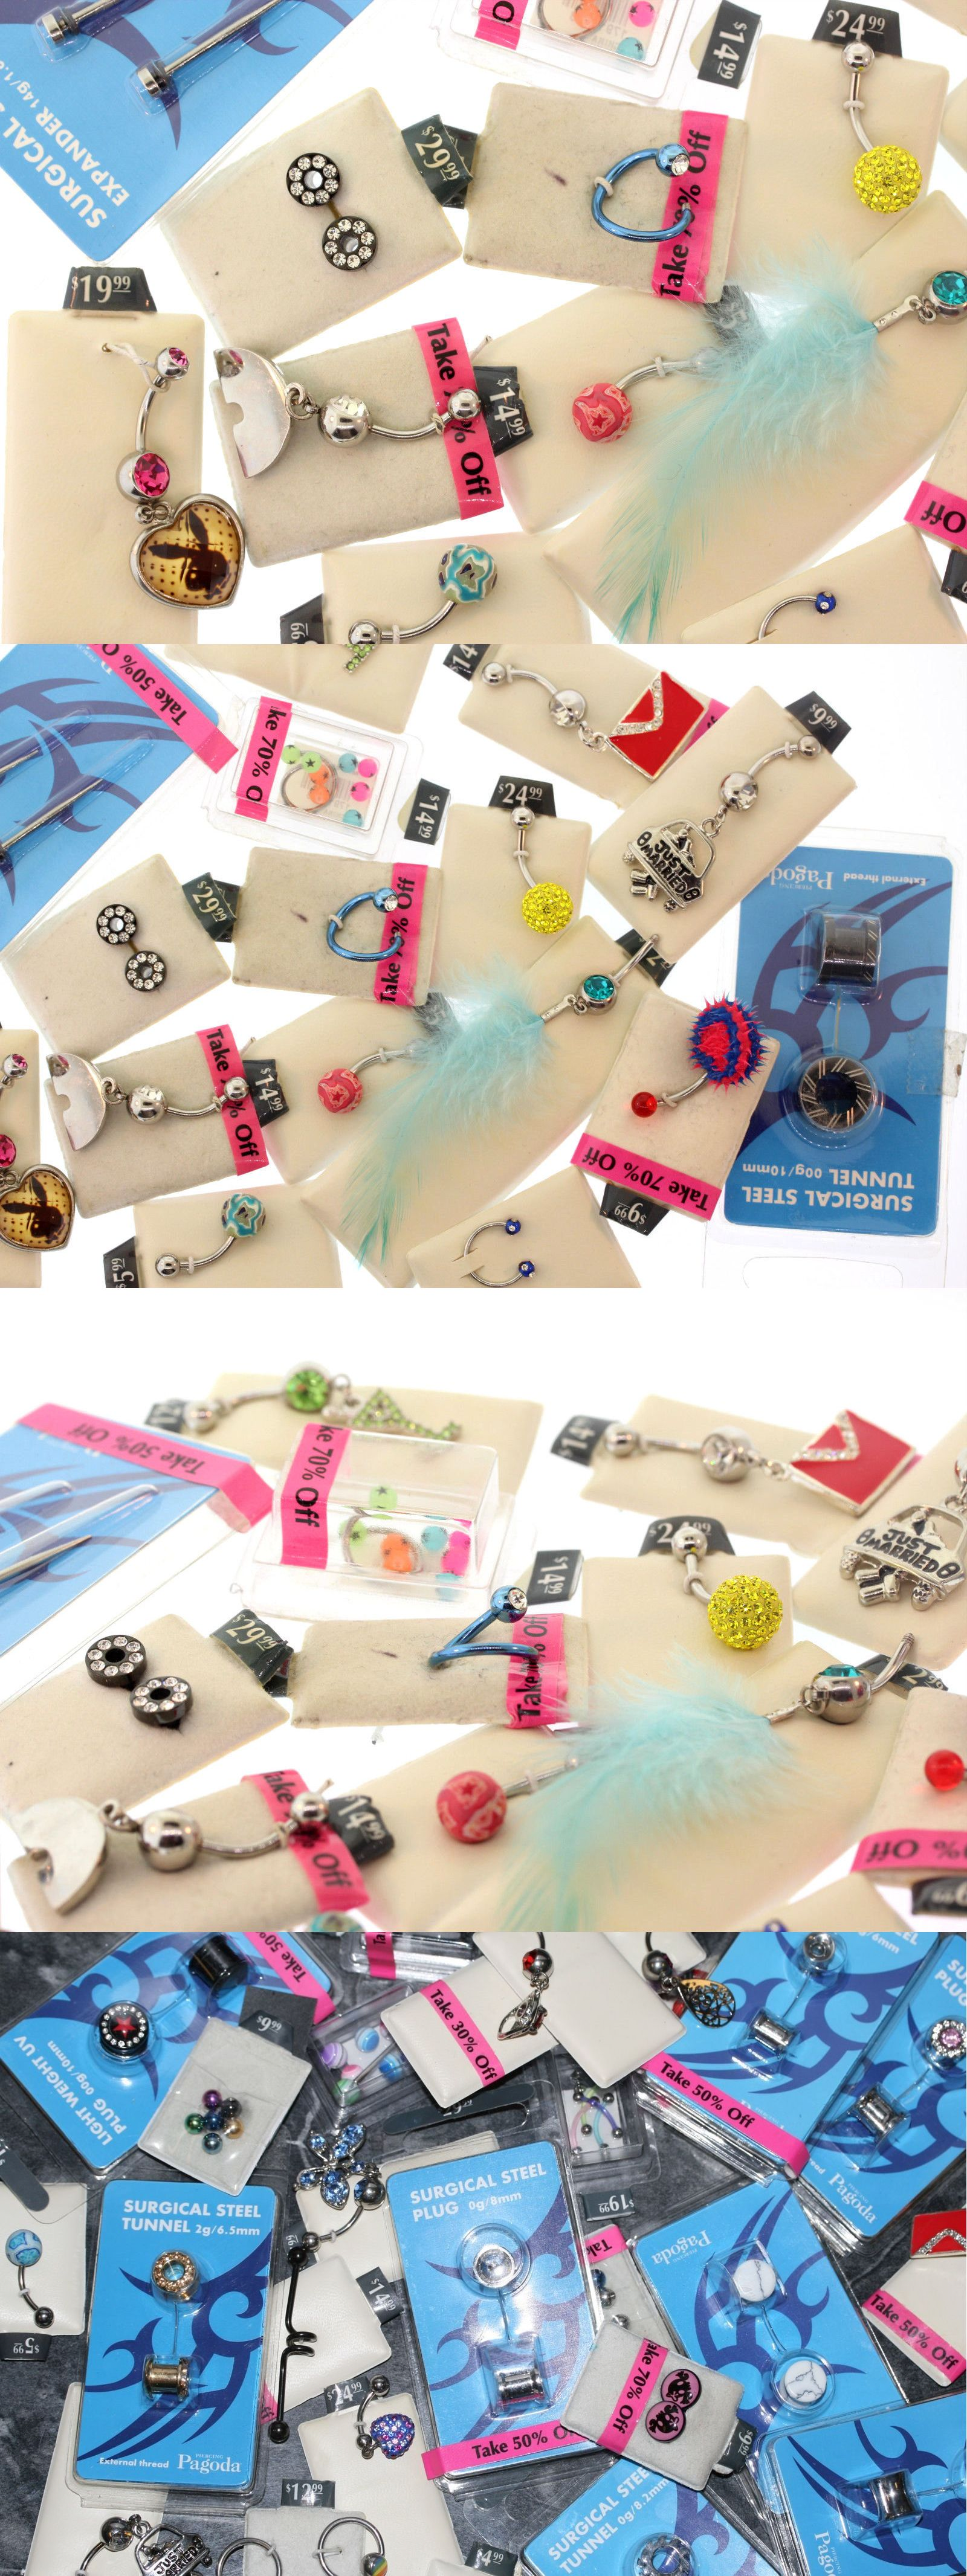 Nose ring without piercing flipkart  NWT pc Wholesale Lot Body Jewelry Belly Facial Lip Nose Rings